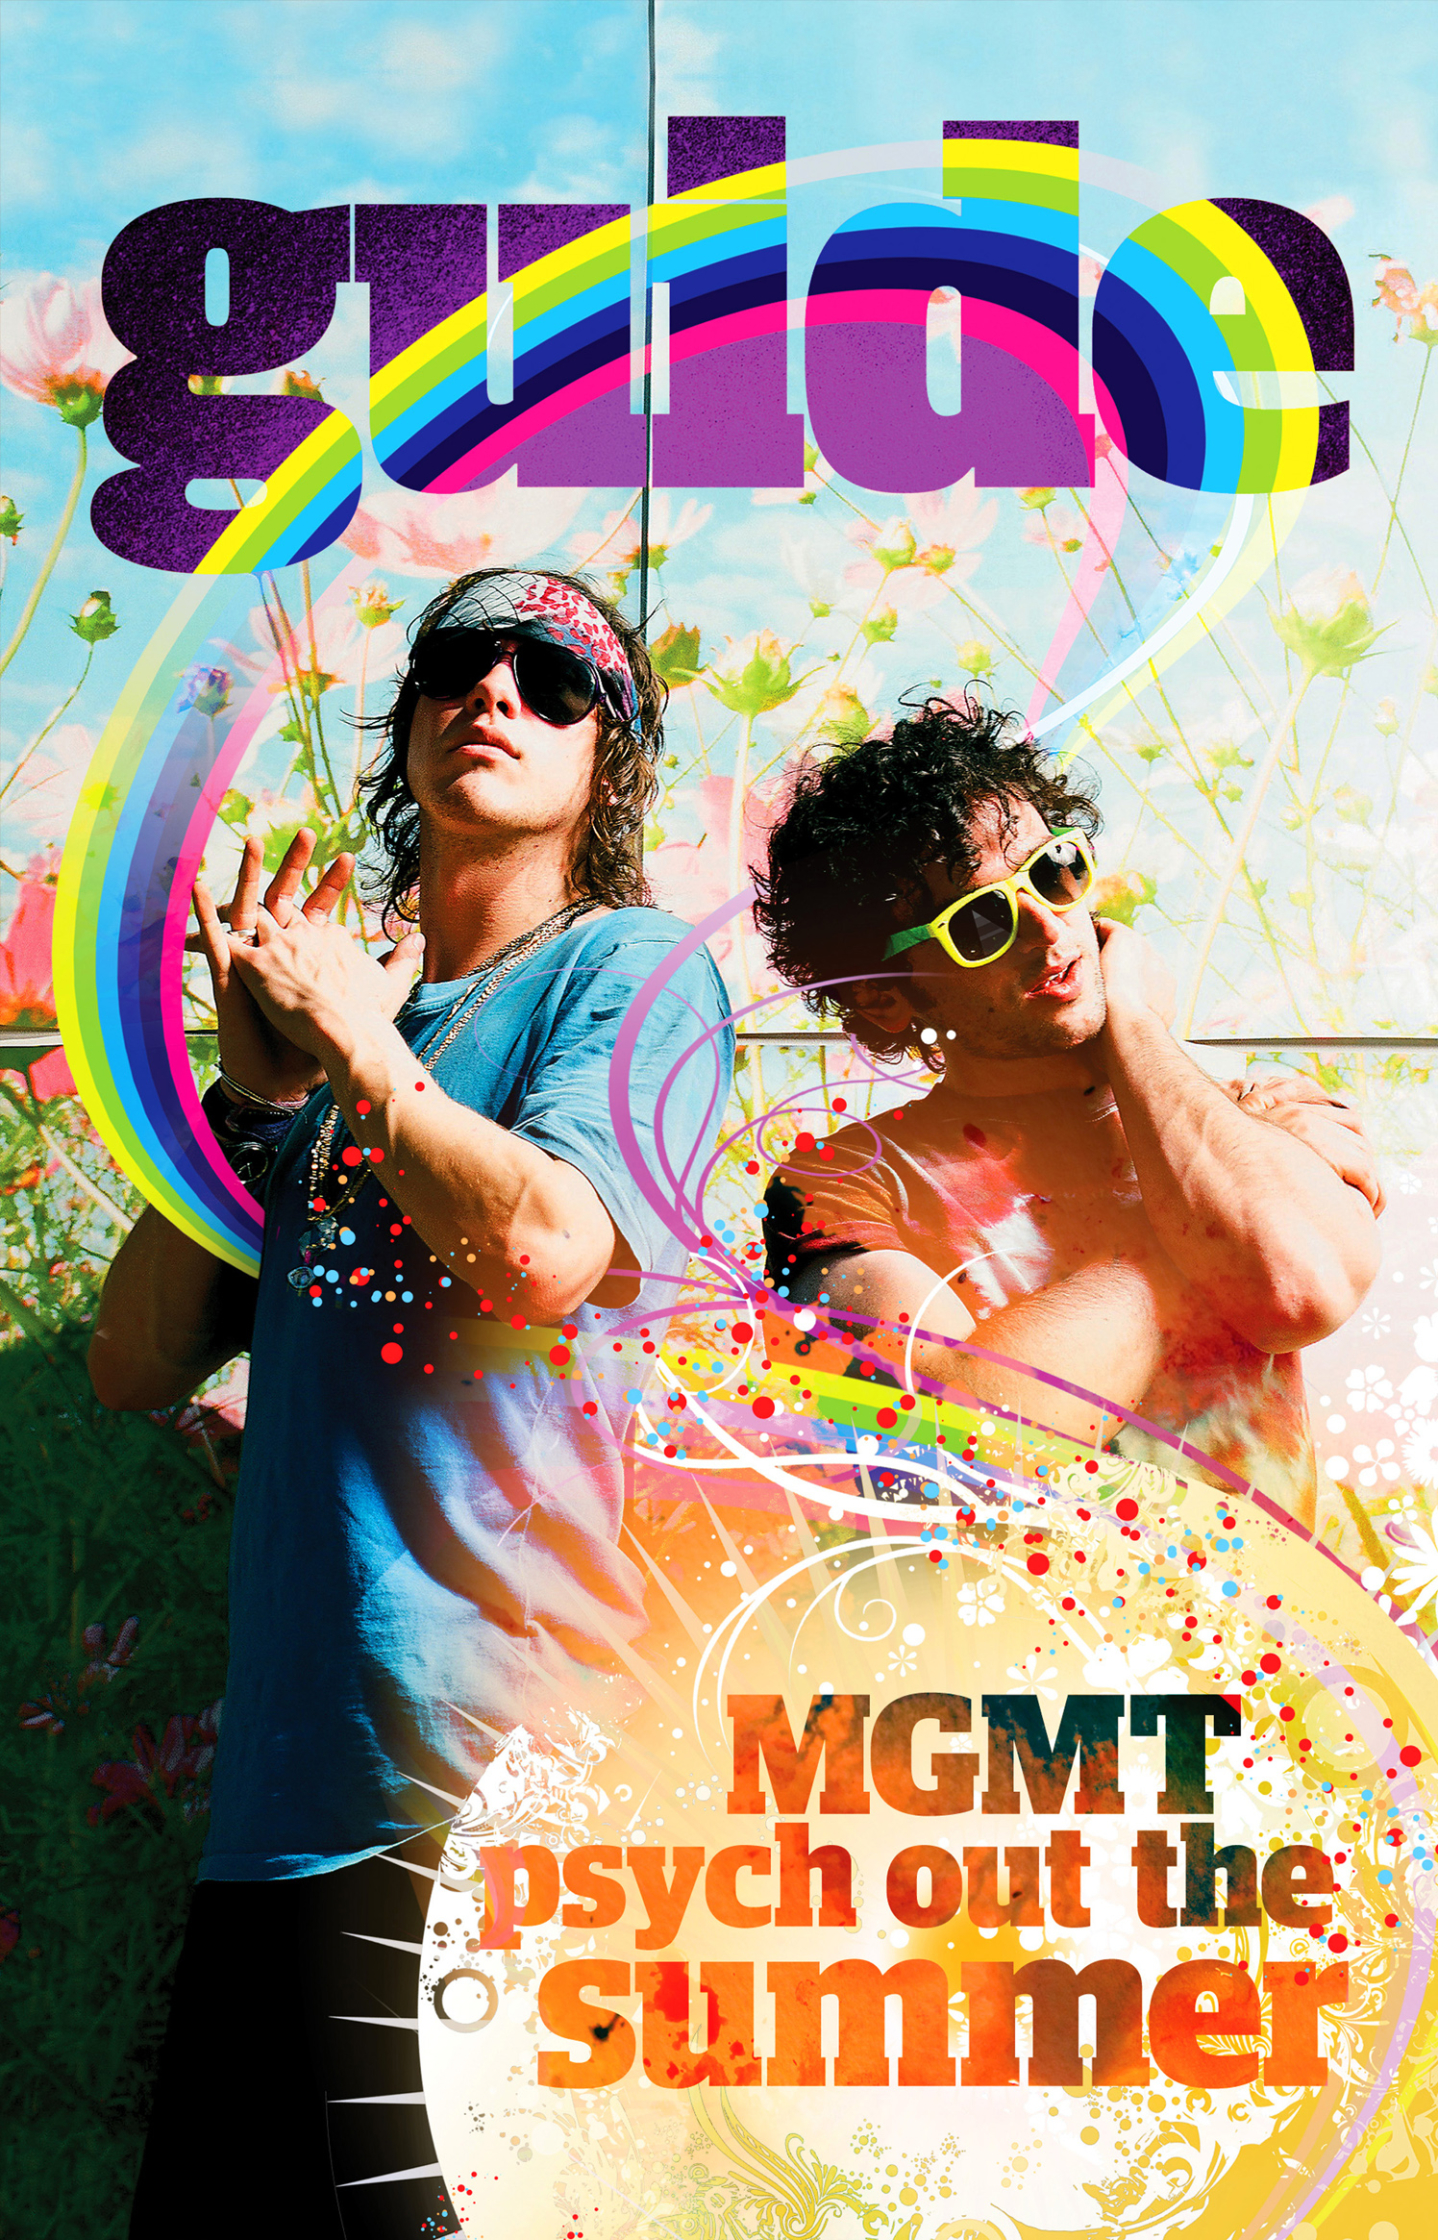 MGMT The Guide Front Cover